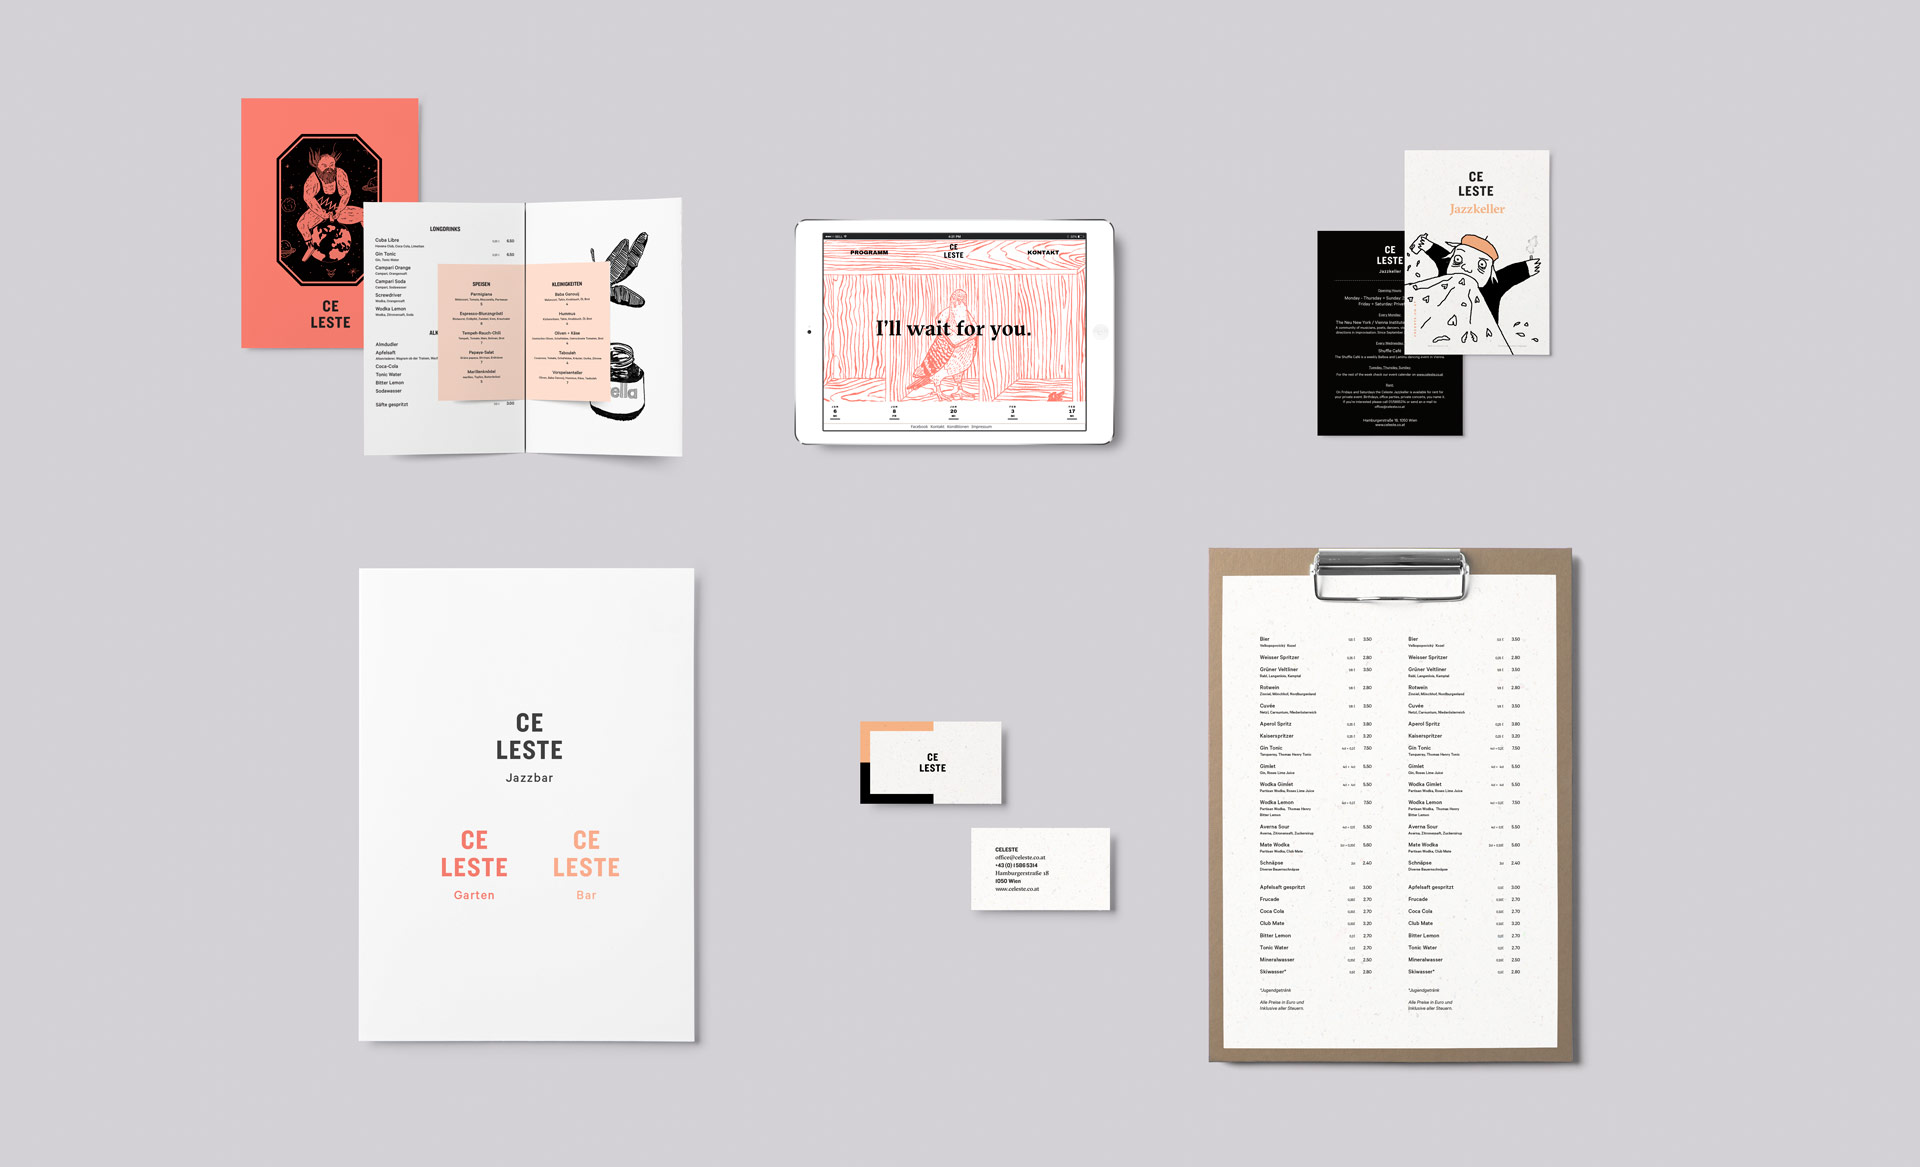 celeste_Corporate_Stationery_Mockup